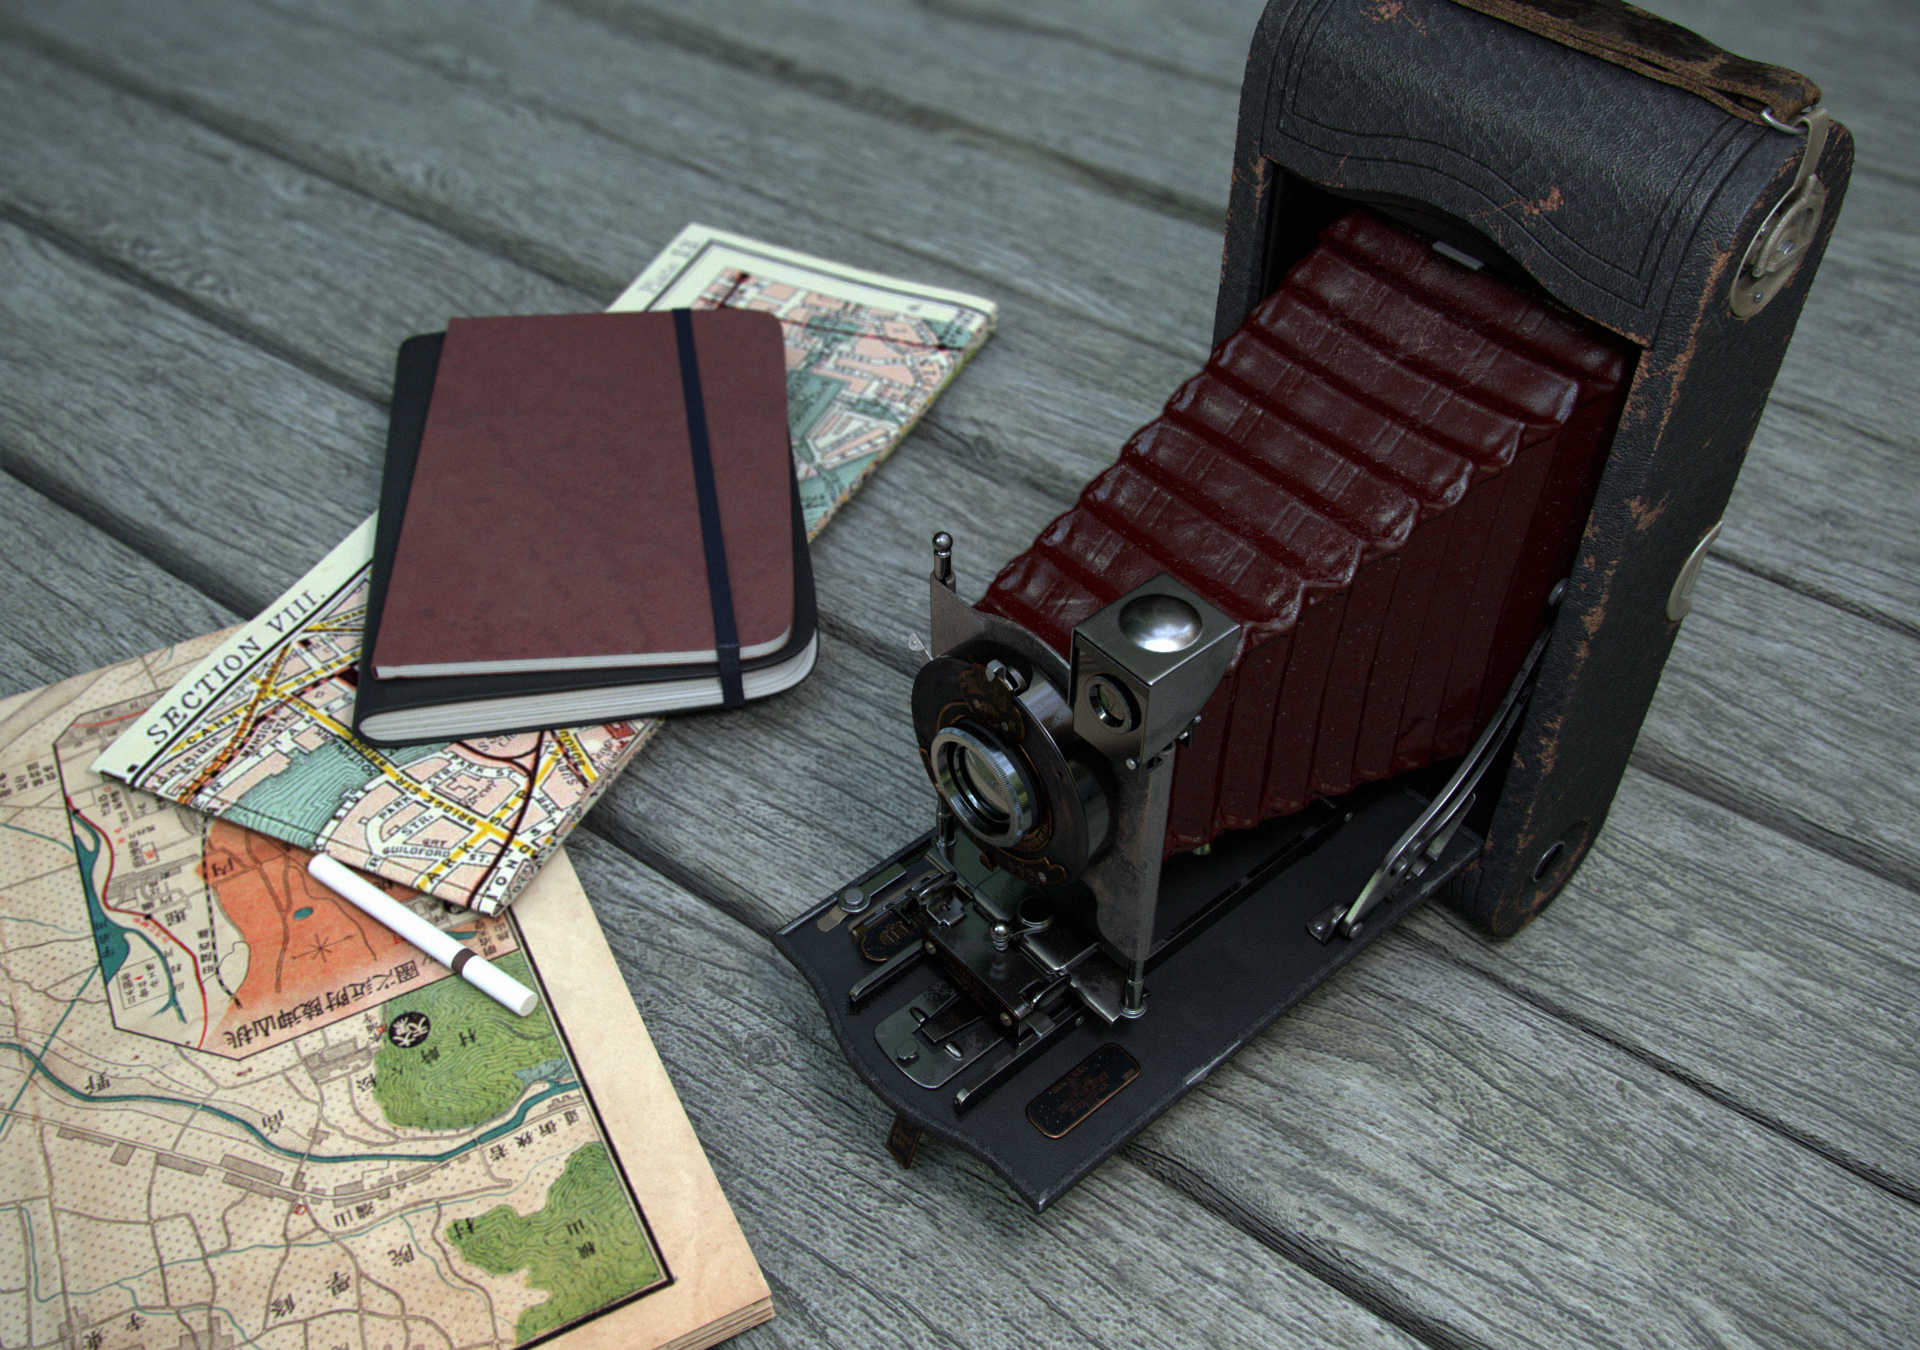 No 3A Folding Pocket Kodak – vintage camera